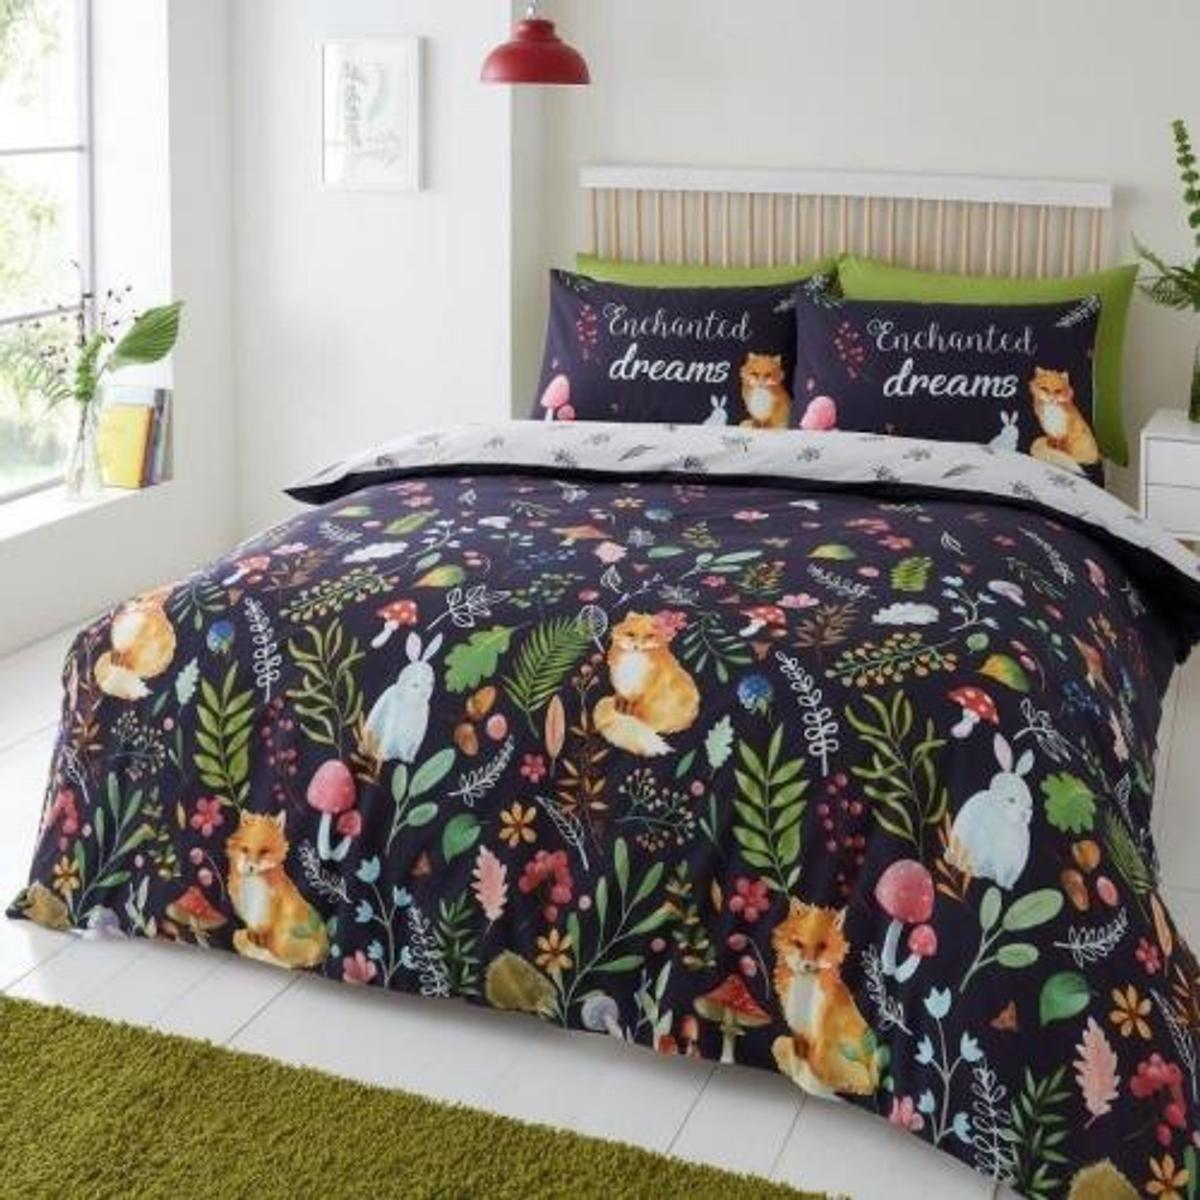 Classic enchanted dreams reversible cover duvet bed set  Sizes available are: Single £15.99 Double £19.99 Kingsize £23.99  These adorable enchanted dreams design bedding sets by Gaveno Cavailia are available in three sizes single 137 x 200 cm with one pillow case, double 200 x 200 cm with two pillow cases and king size 230 x 220 cm with two pillow cases.  #ad